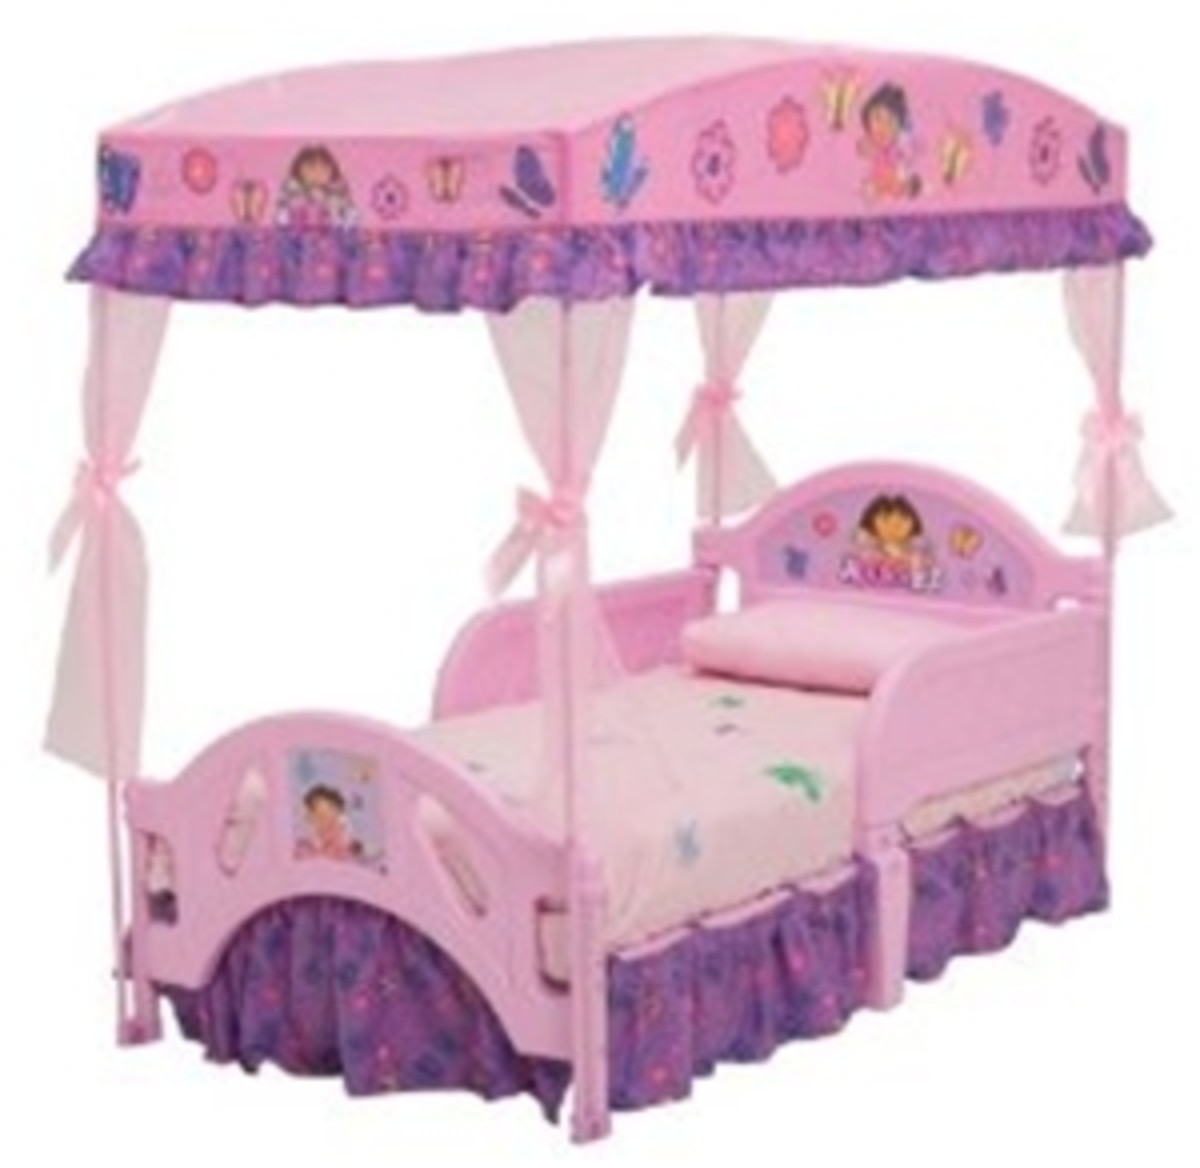 Every little girl would love this Dora The Explorer Toddler Bed.  sc 1 st  HubPages & Dora Bed and Bedding - Little Girl Dora Canopy Toddler Bed | HubPages